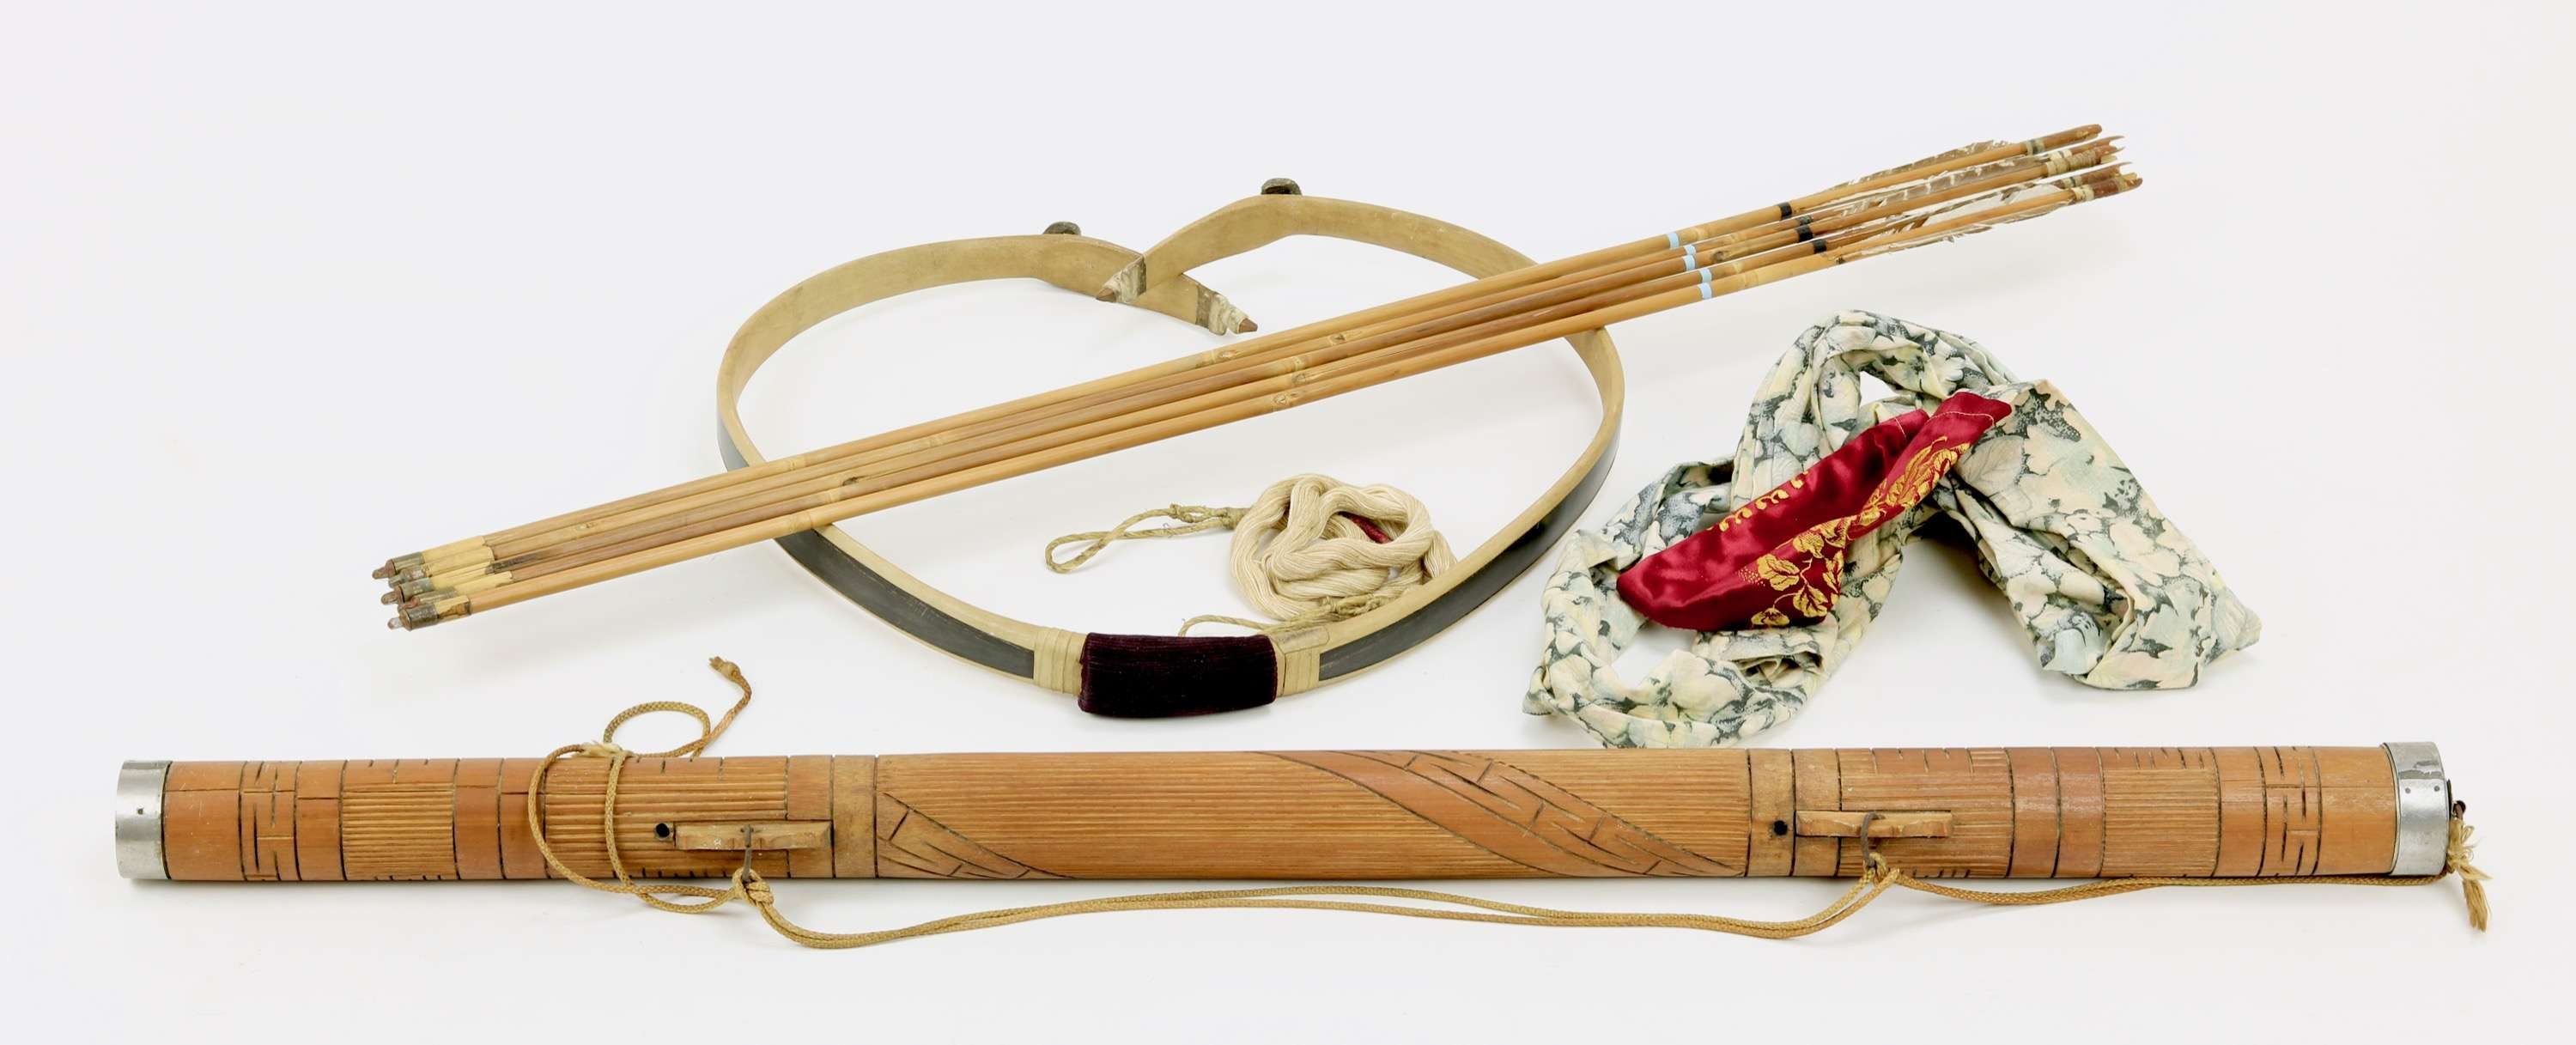 Korean archery set with hornbow, quivers, arrows, bow bag and string